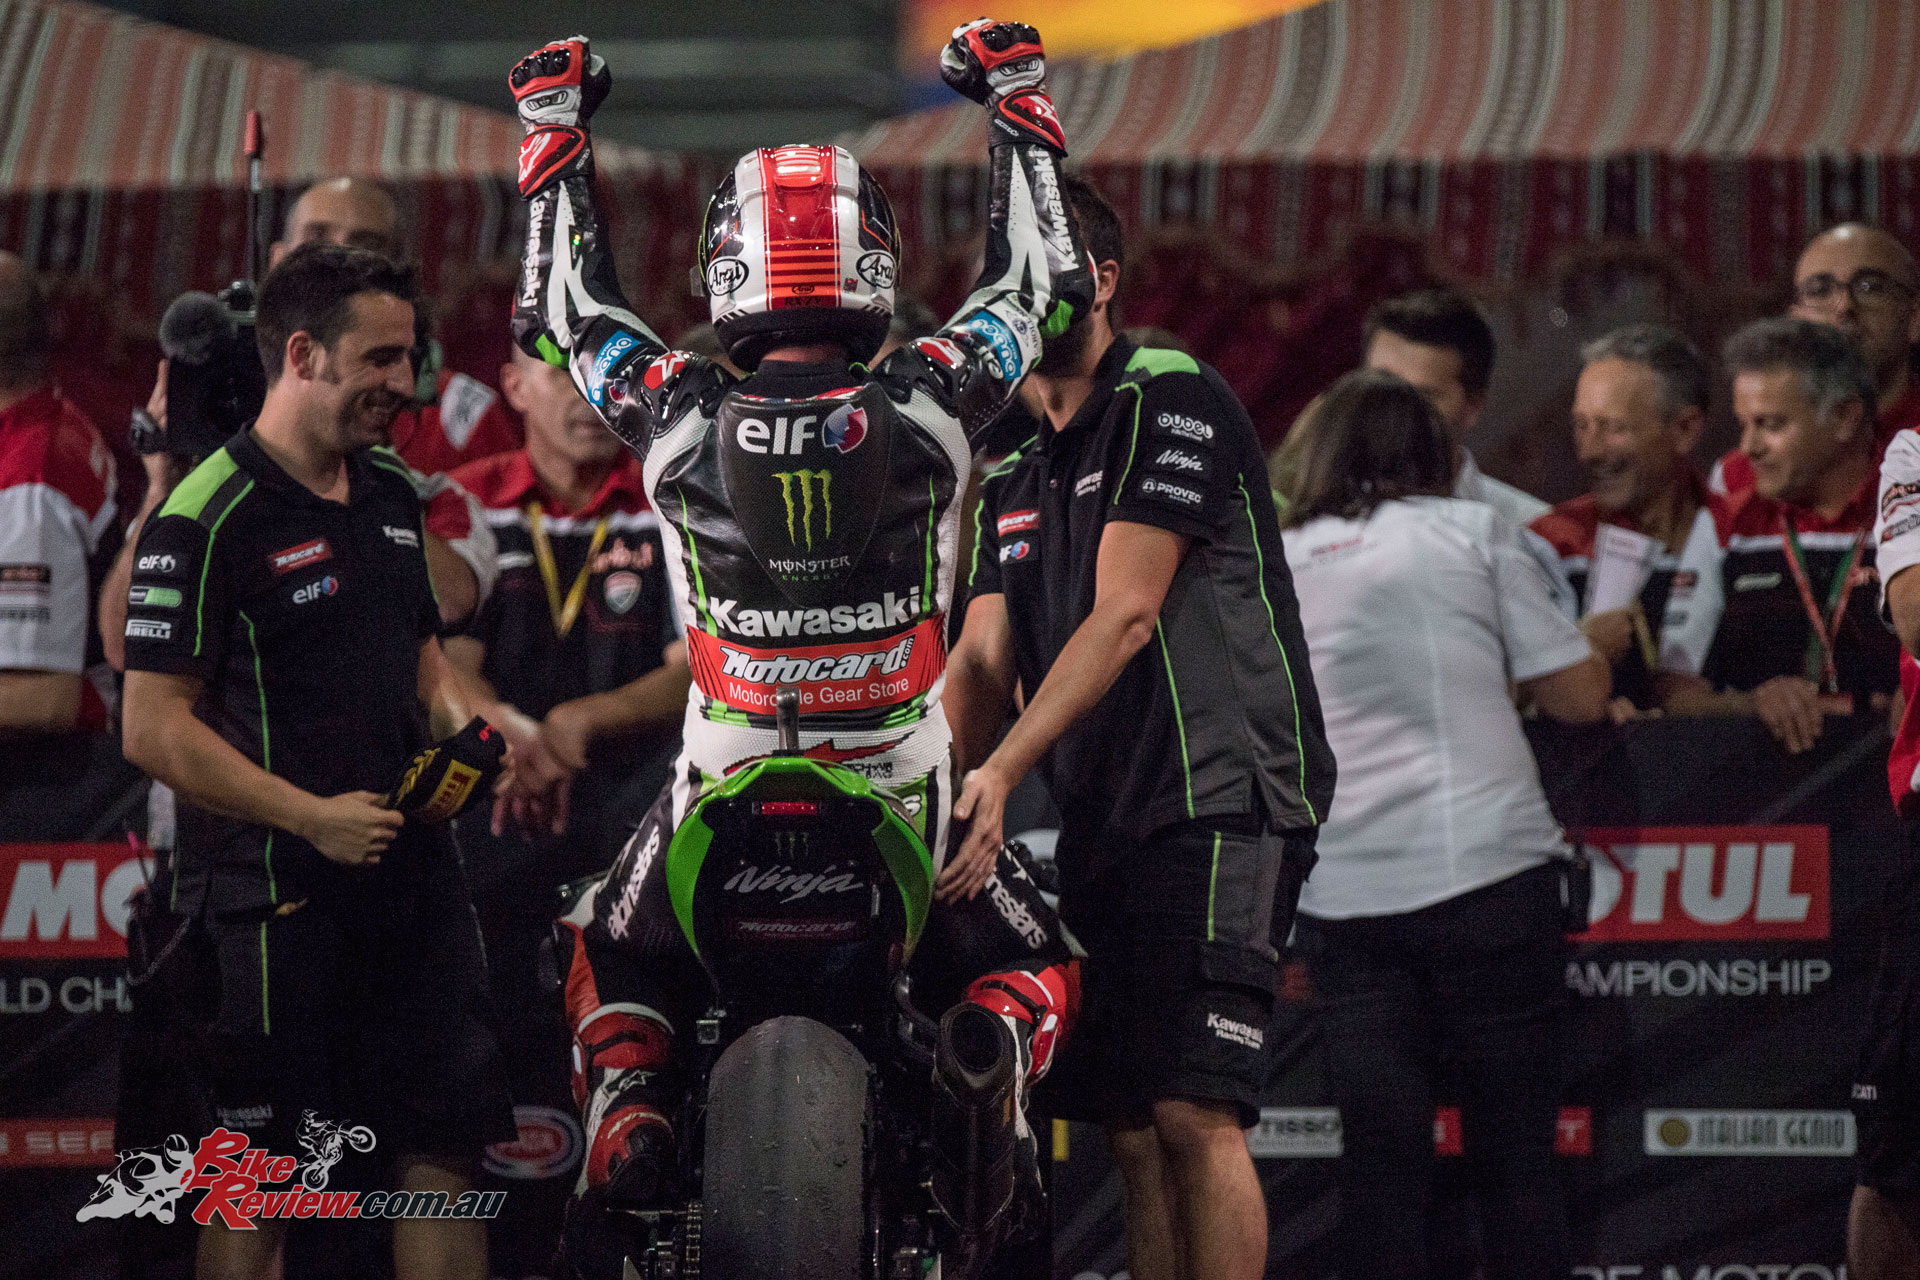 Jonathan Rea - Image by Geebee Images